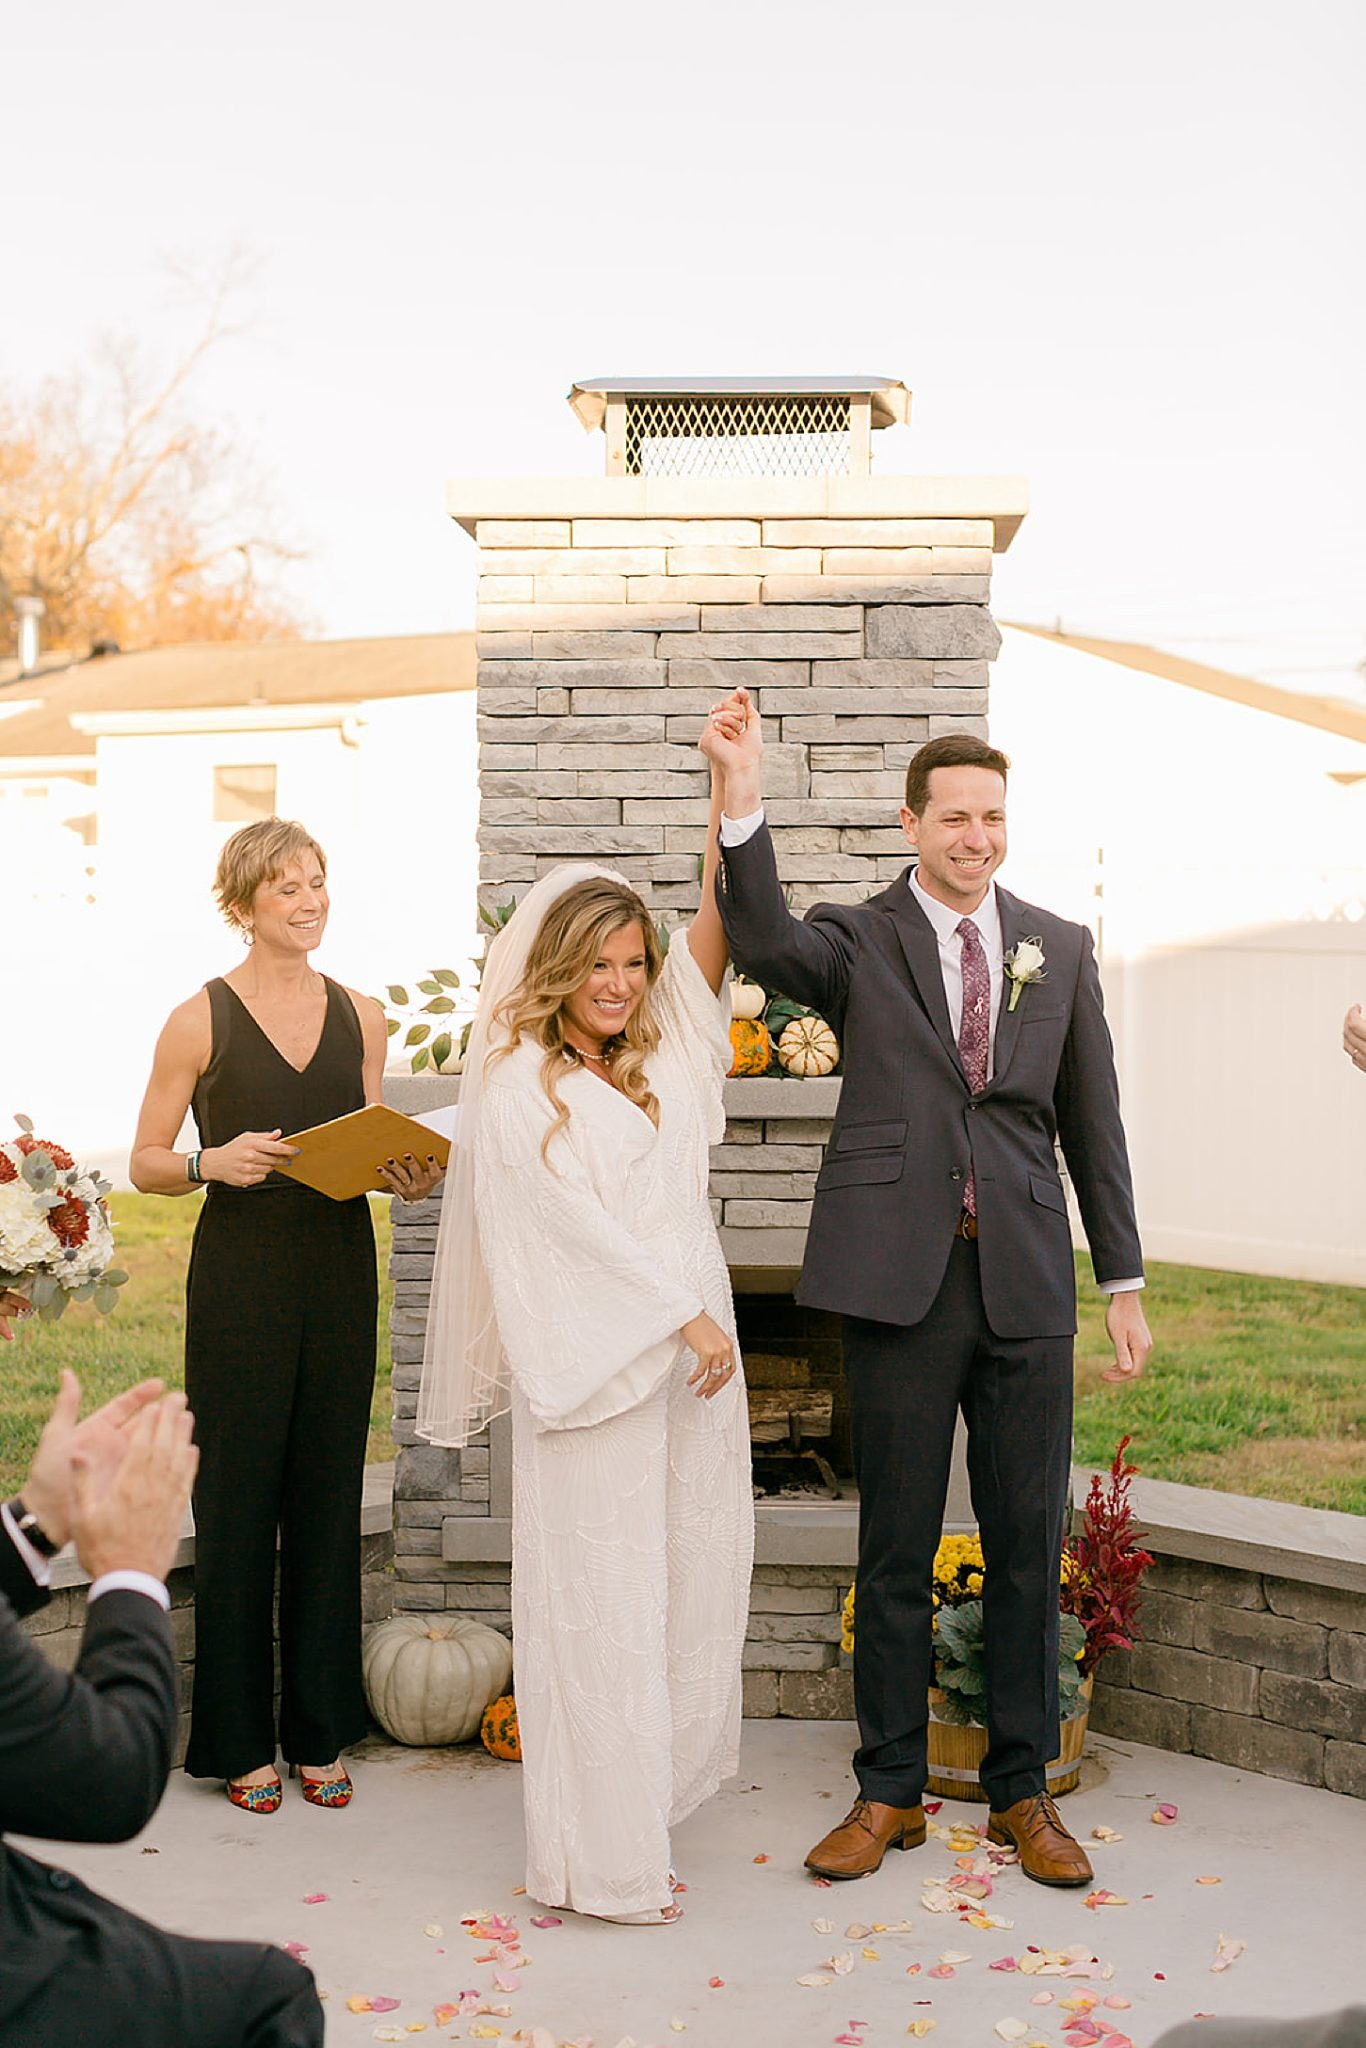 Cape May Intimate Wedding Photography by Magdalena Studios 0008 scaled